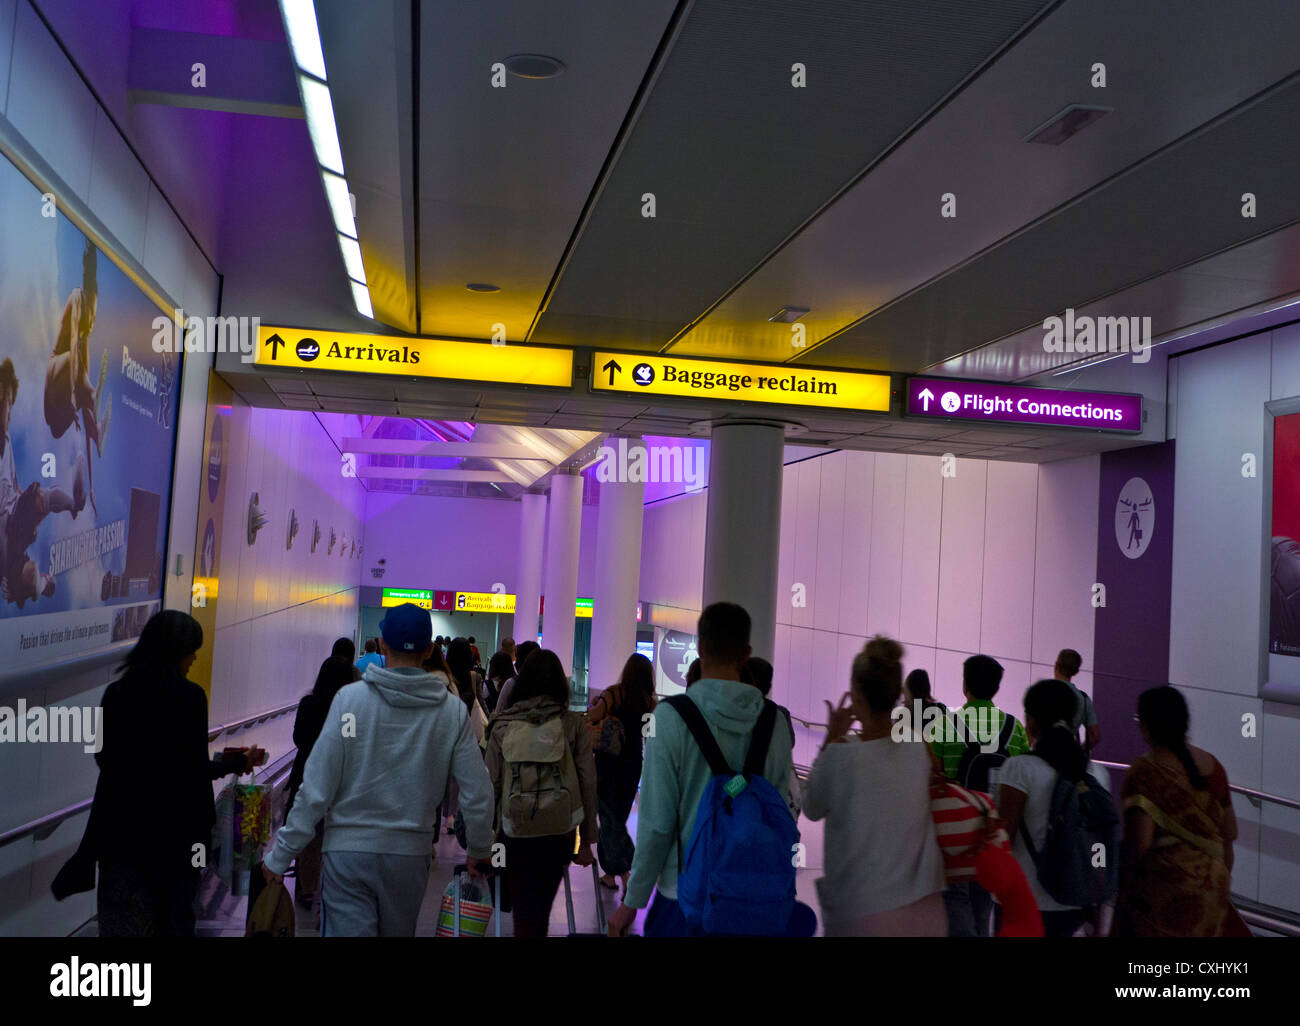 Airline passengers arriving at  Heathrow airport lit by calming suffused colours heading for arrivals and baggage - Stock Image